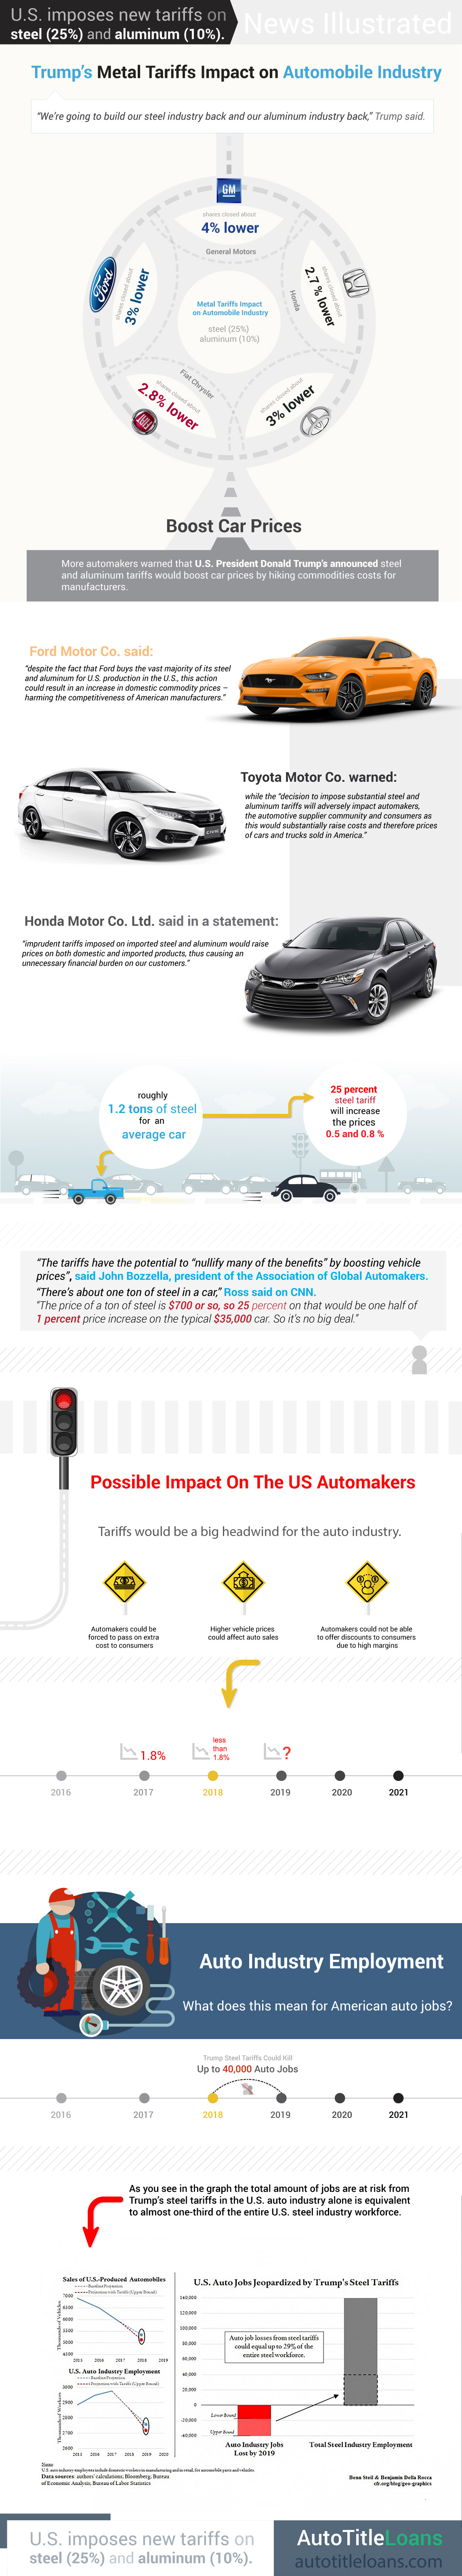 Use this infographic to learn about how Trump's metal tariffs may impact the auto industry.